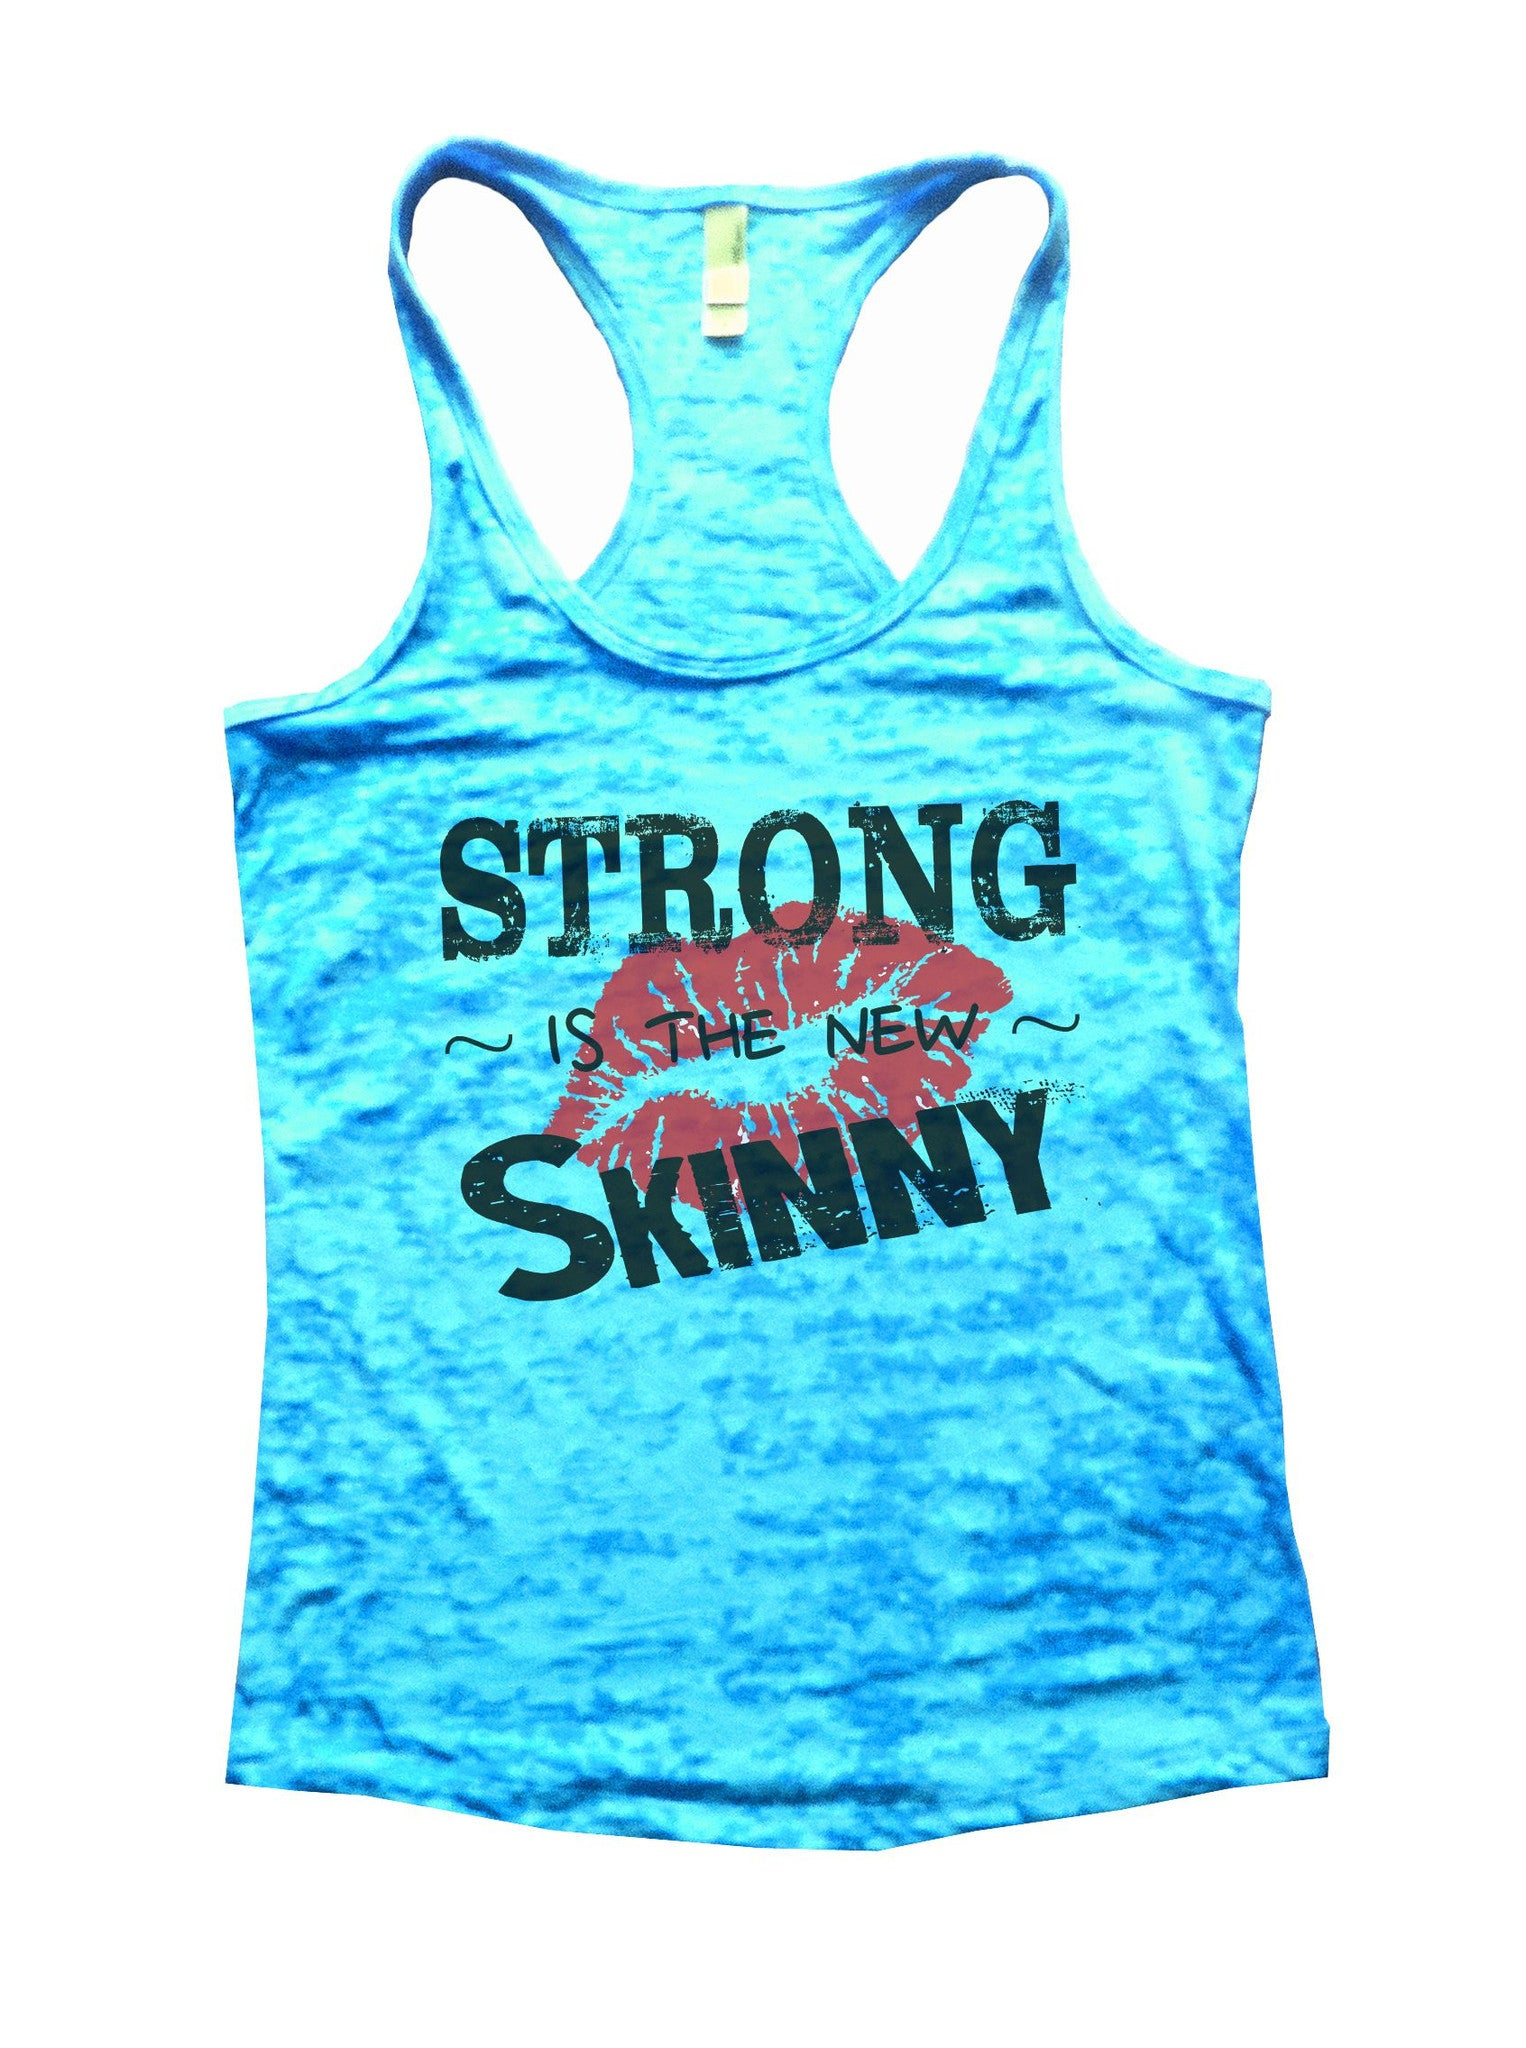 Strong Is The New Skinny Burnout Tank Top By BurnoutTankTops.com - 755 - Funny Shirts Tank Tops Burnouts and Triblends  - 4